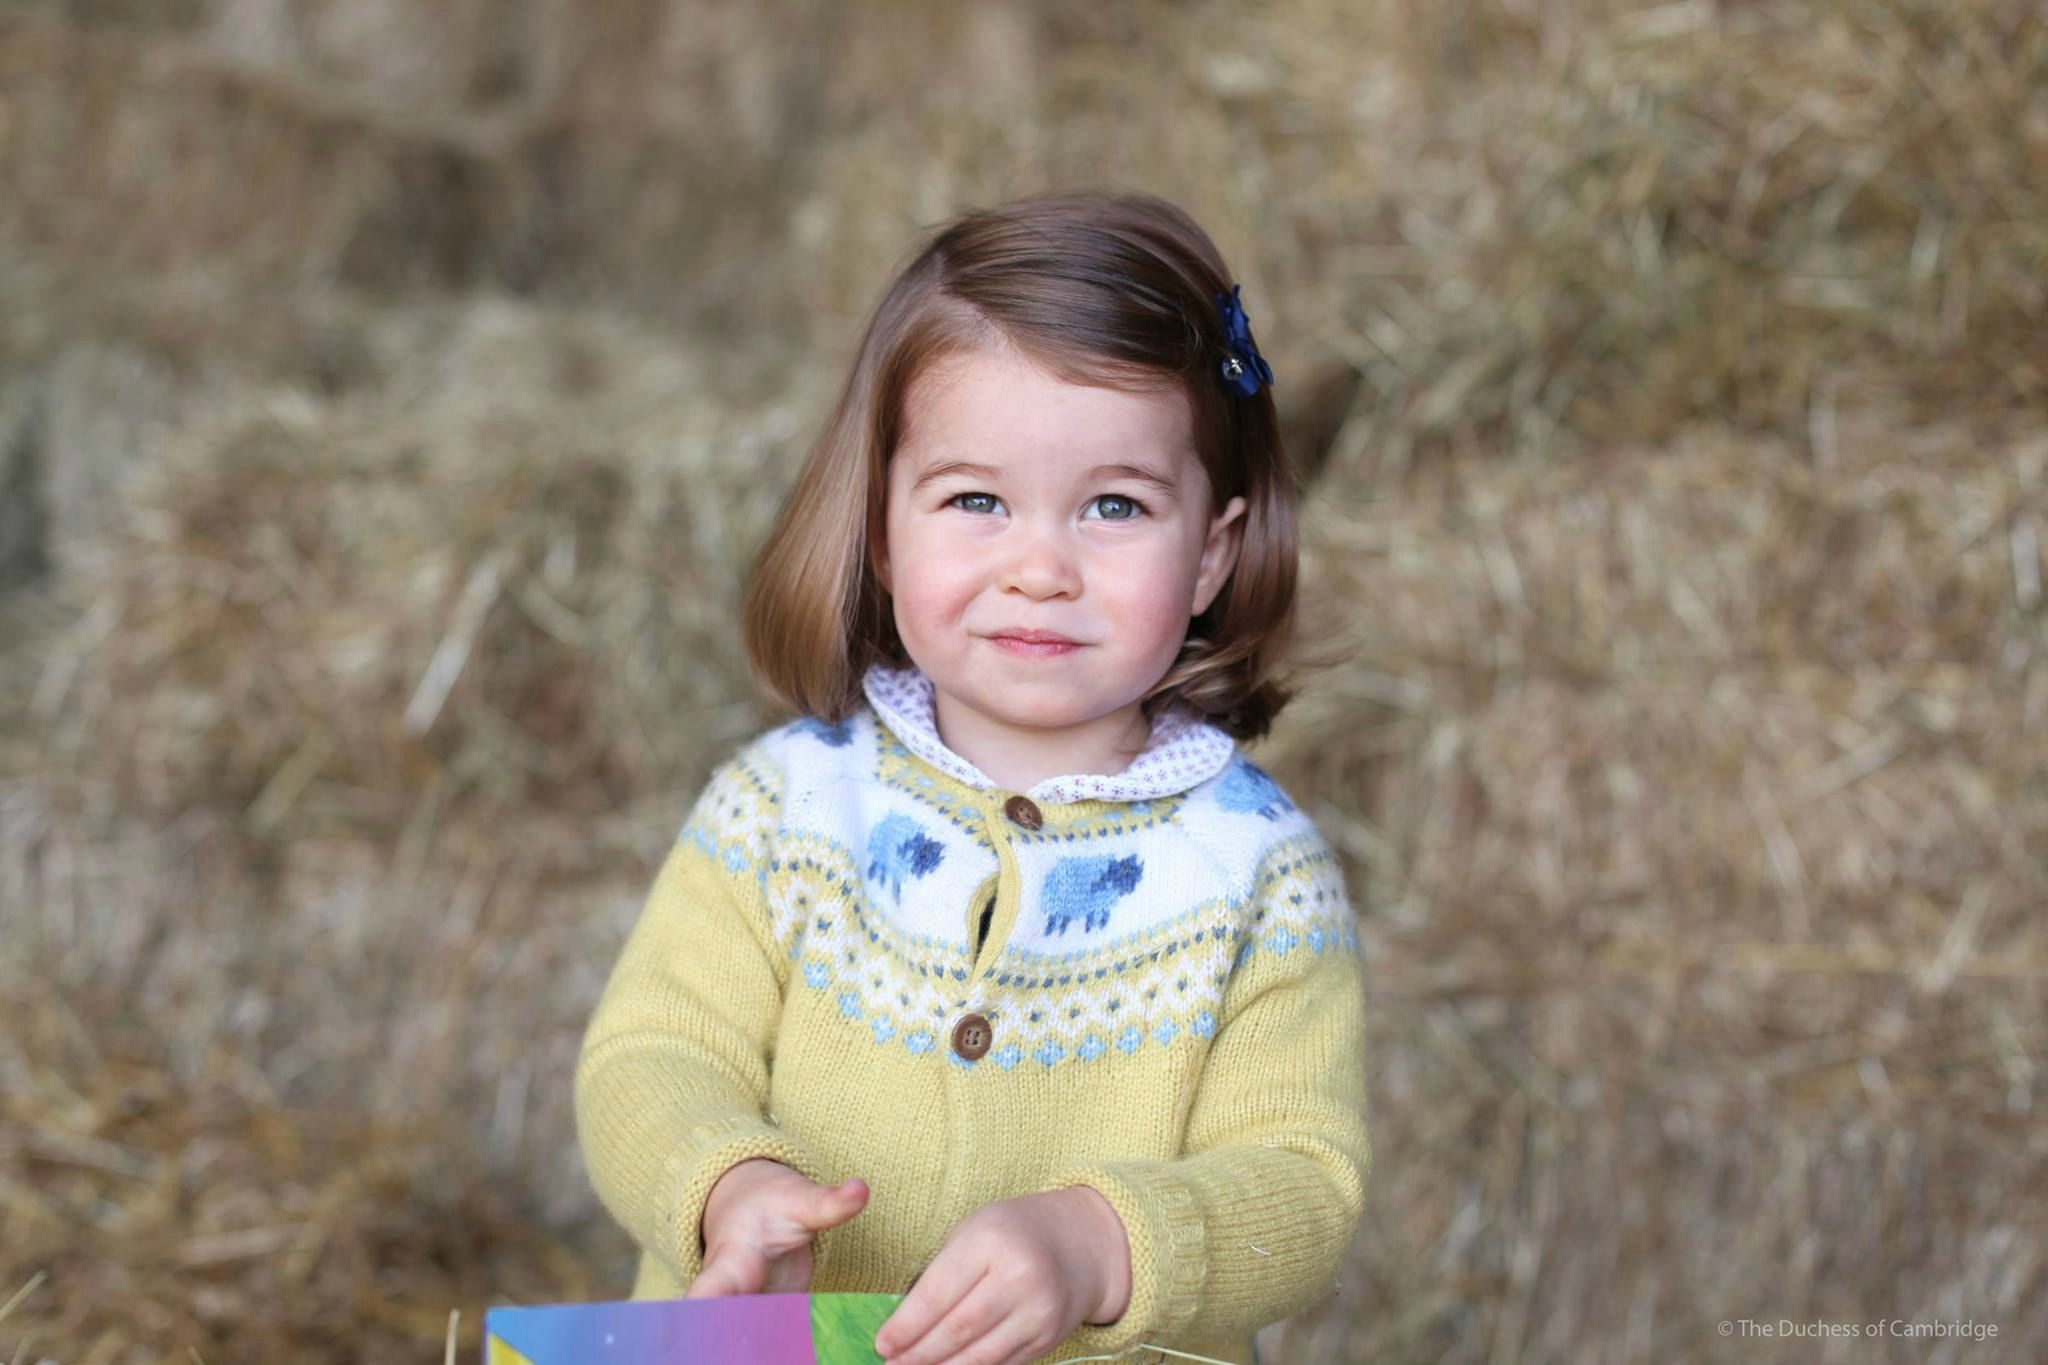 Princess Charlotte's John Lewis cardigan is a sell out